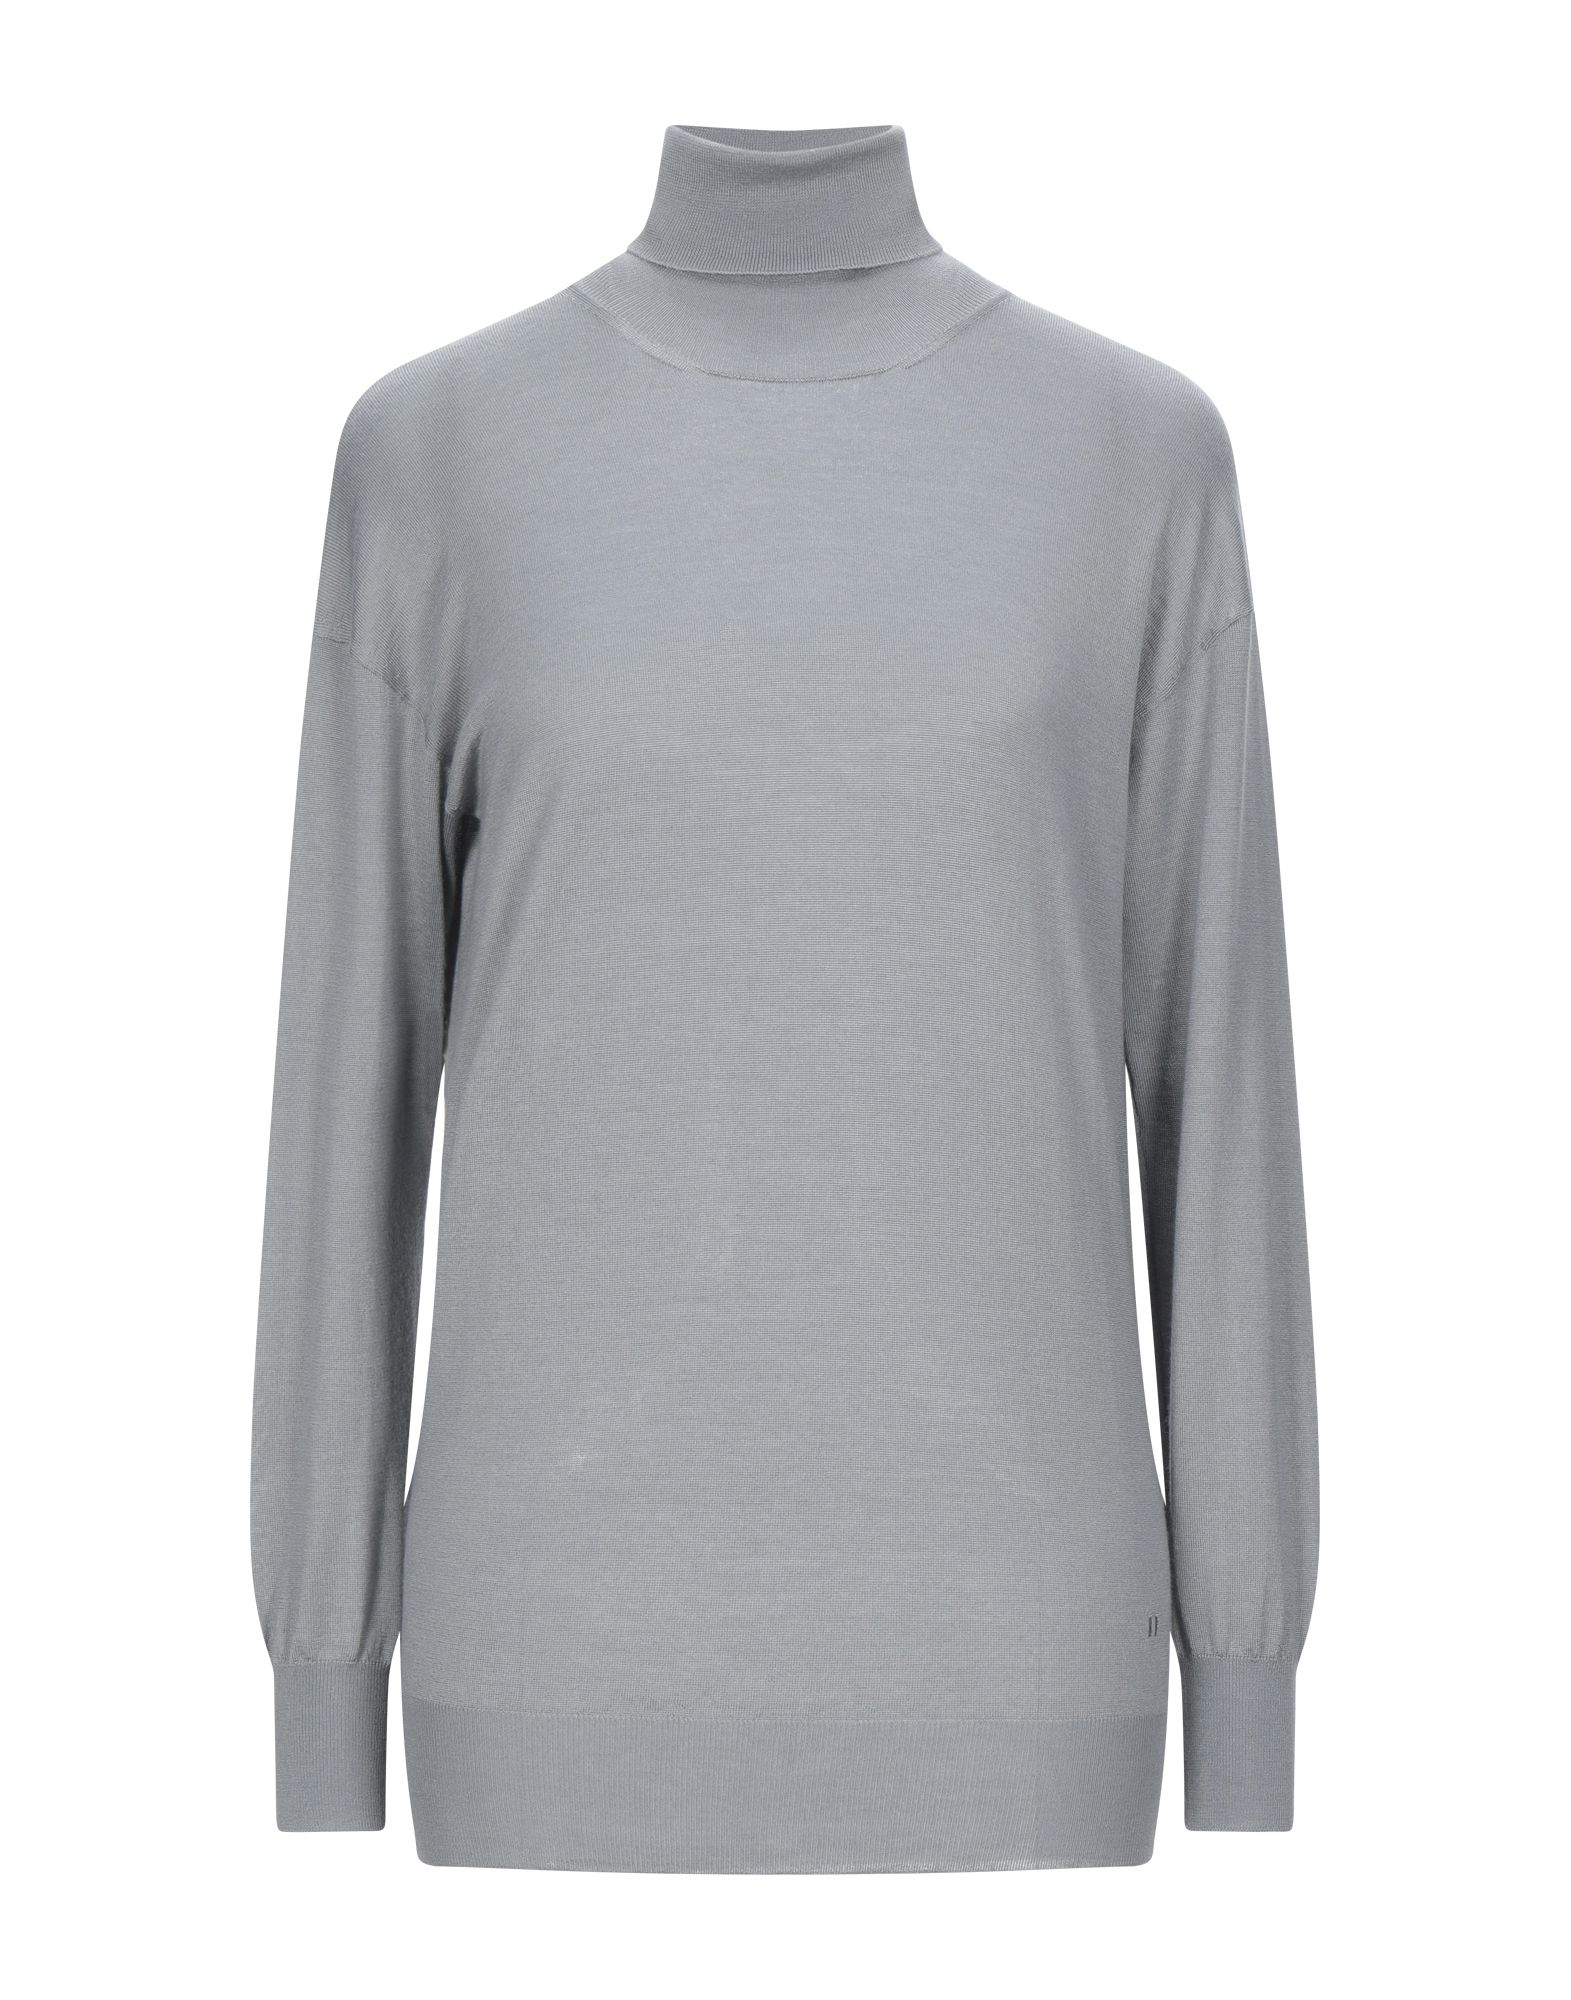 TOM FORD Turtlenecks - Item 14071361